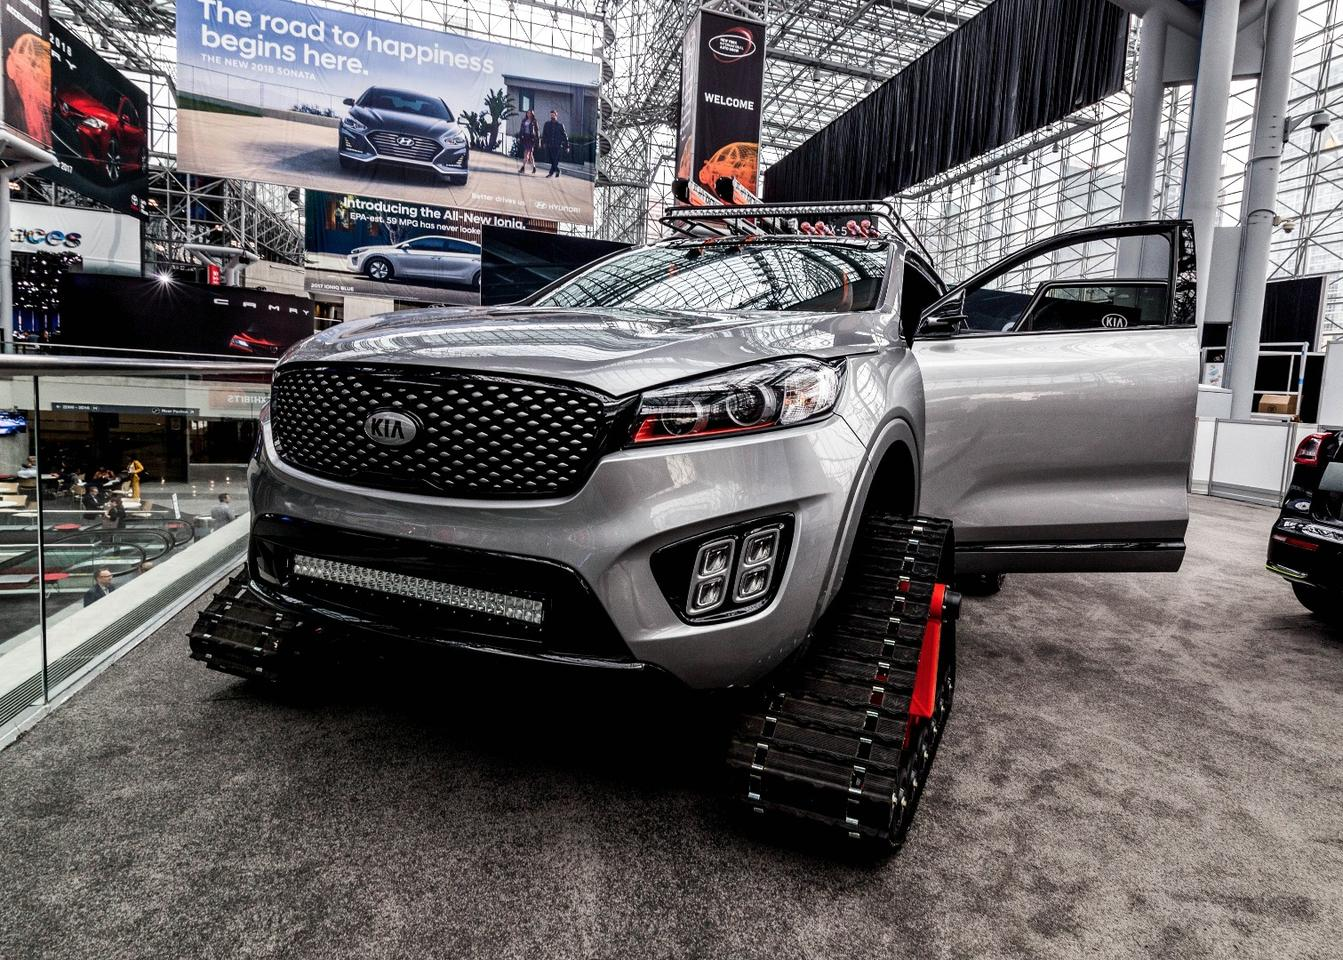 Kia joined the tracks-party with this Sportage in New York